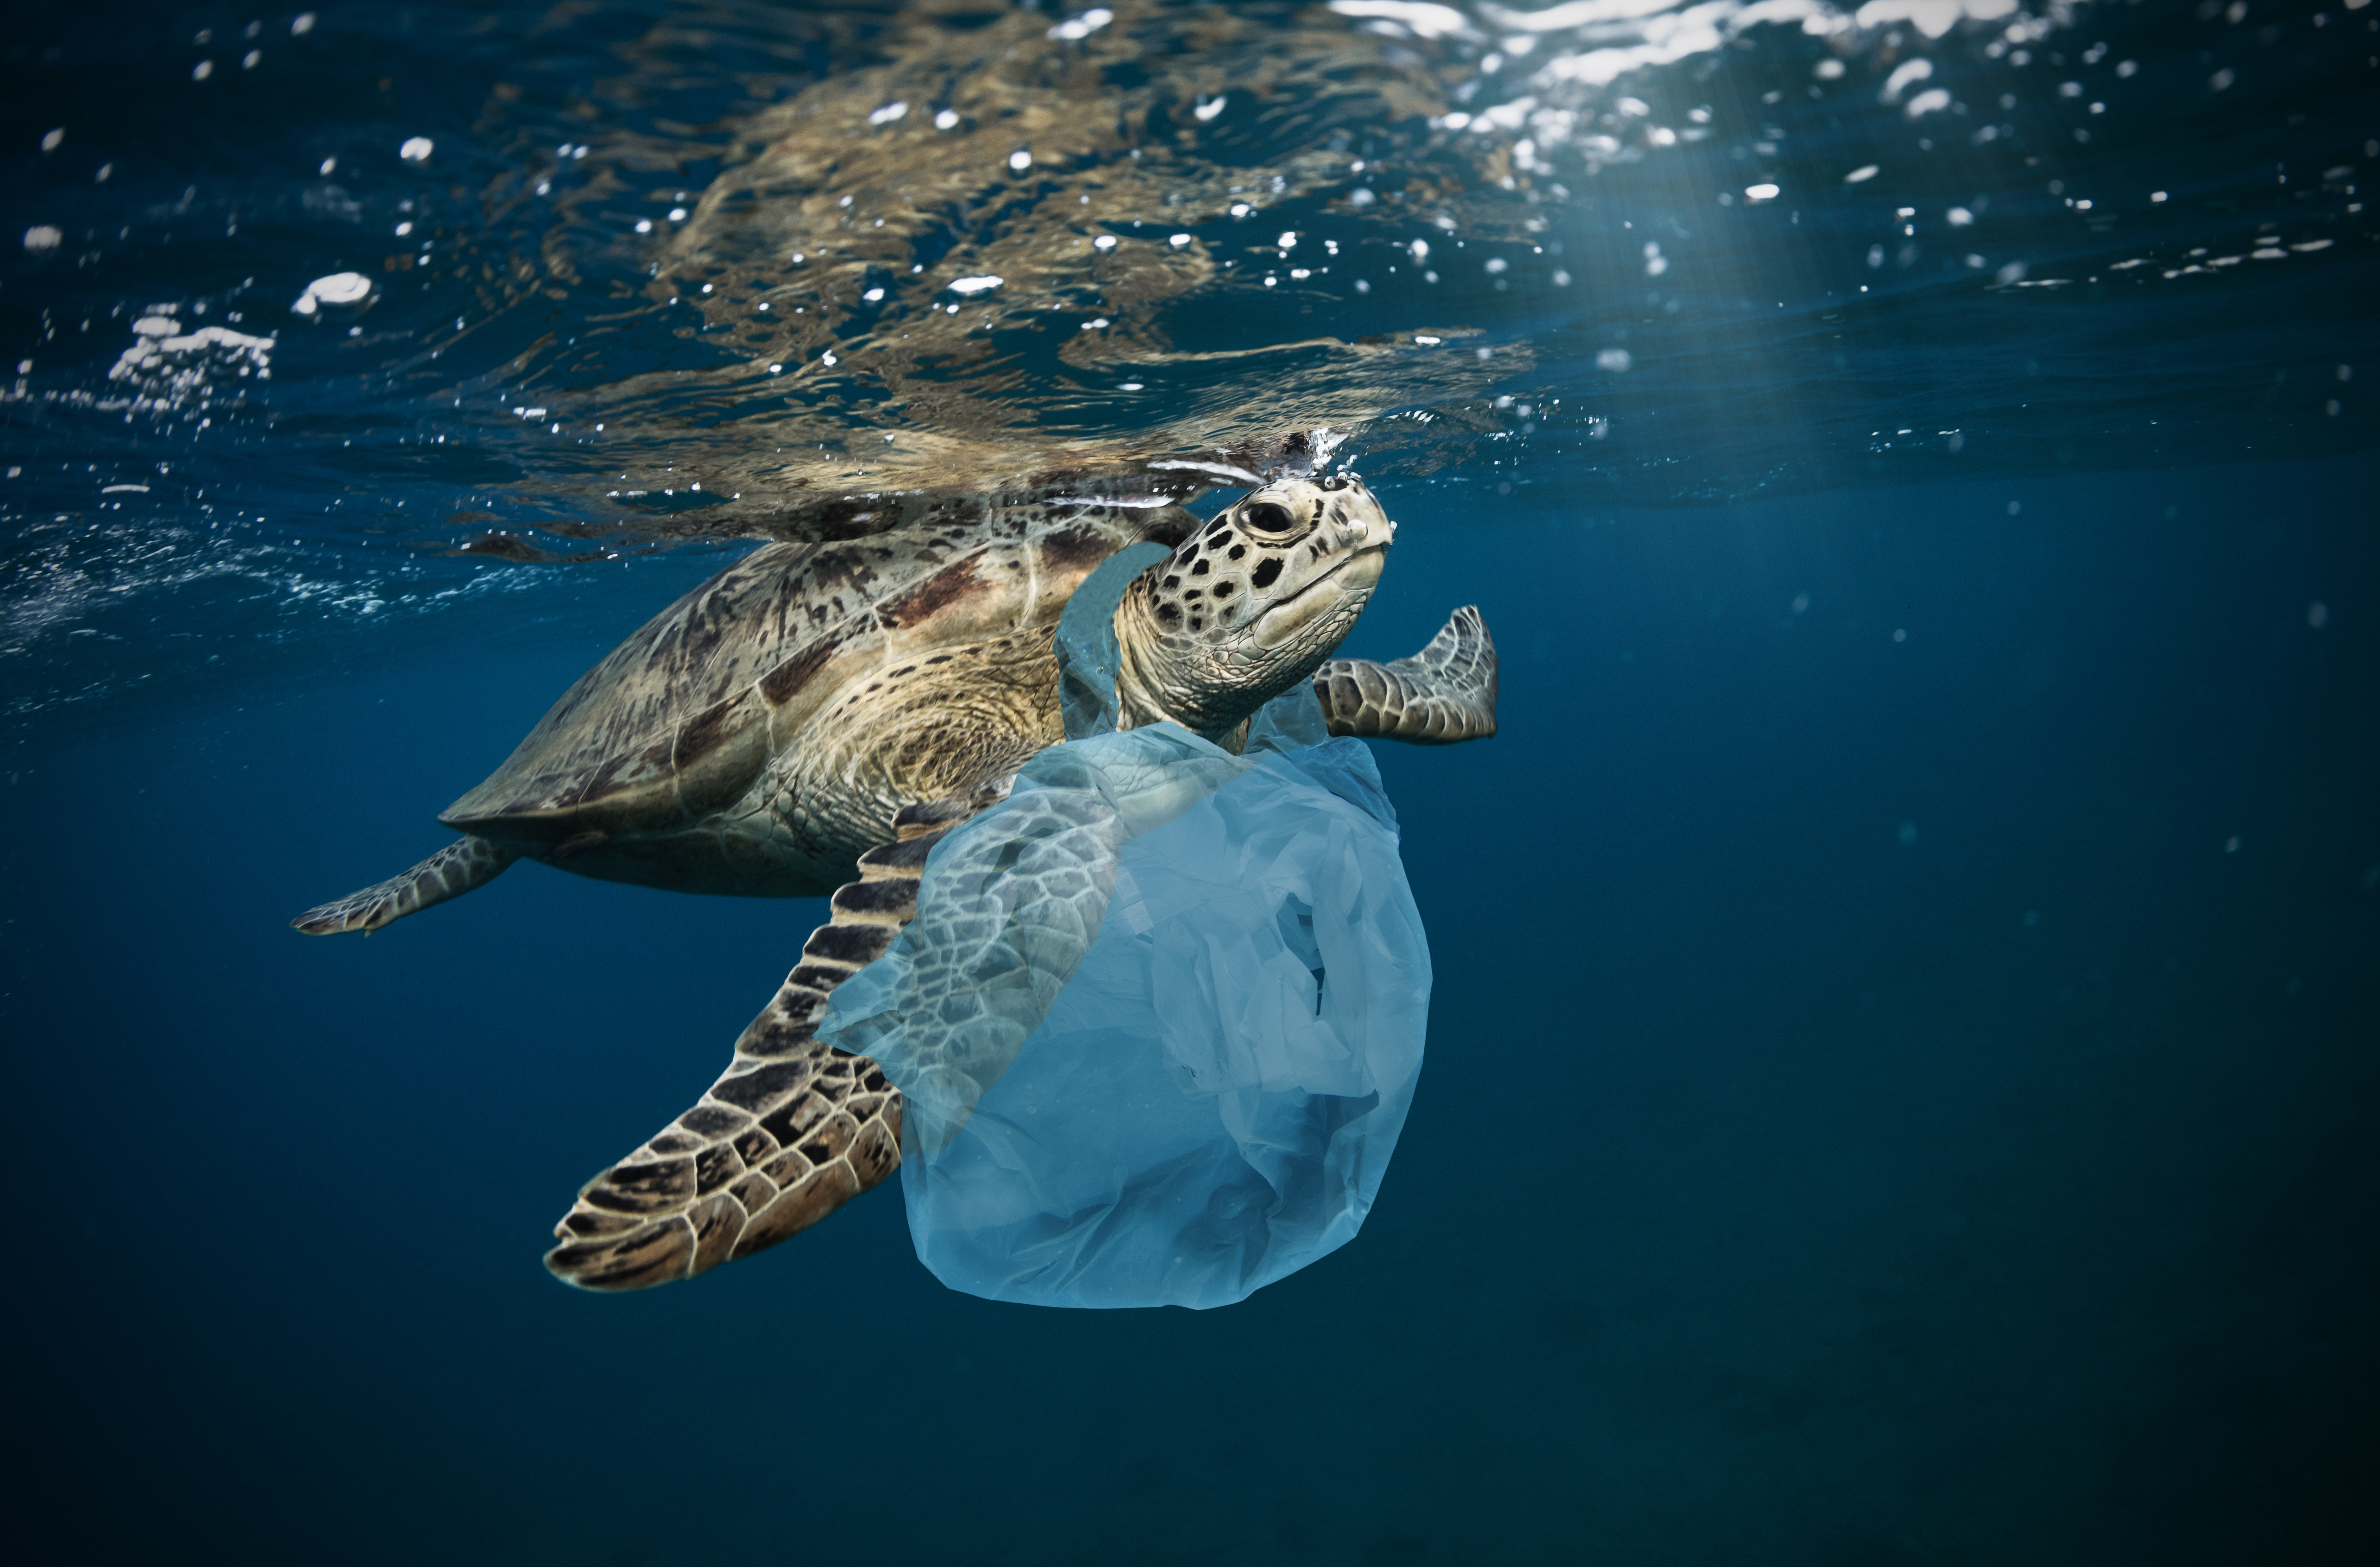 Underwater global problem with plastic